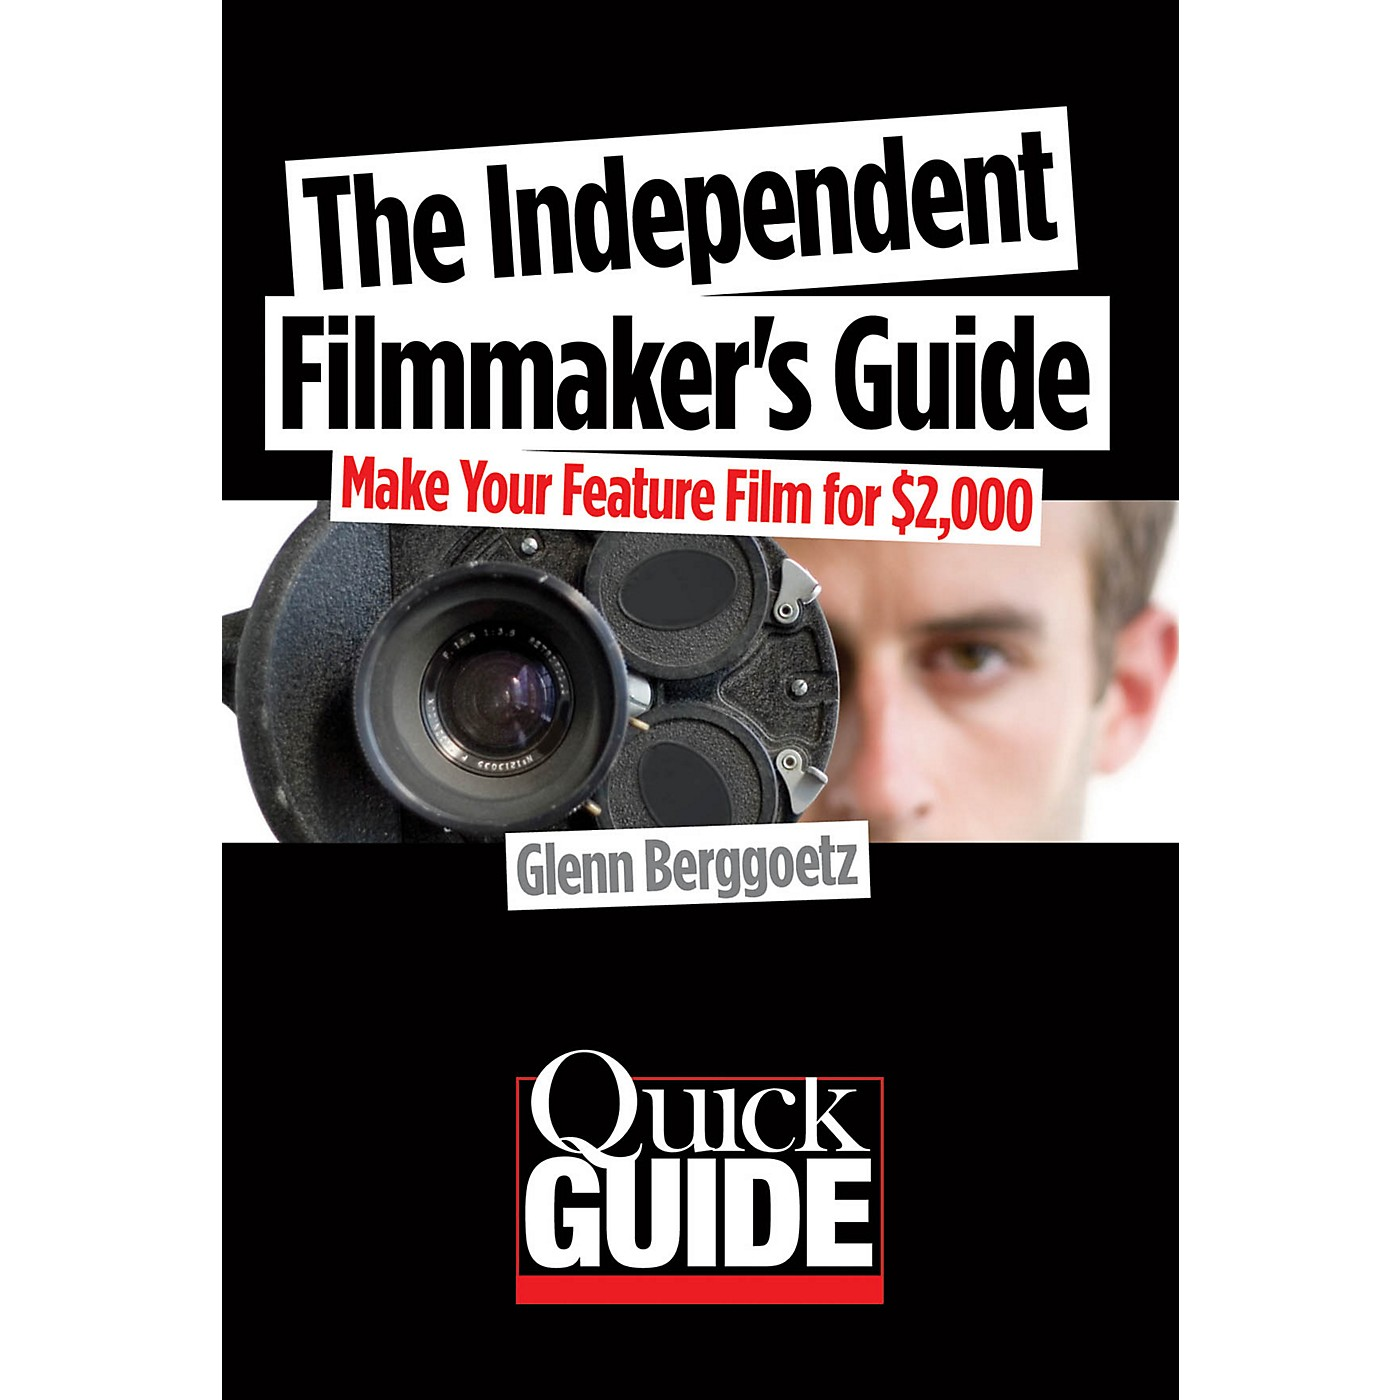 Limelight Editions The Independent Filmmaker's Guide Quick Guide Series Softcover Written by Glenn Berggoetz thumbnail